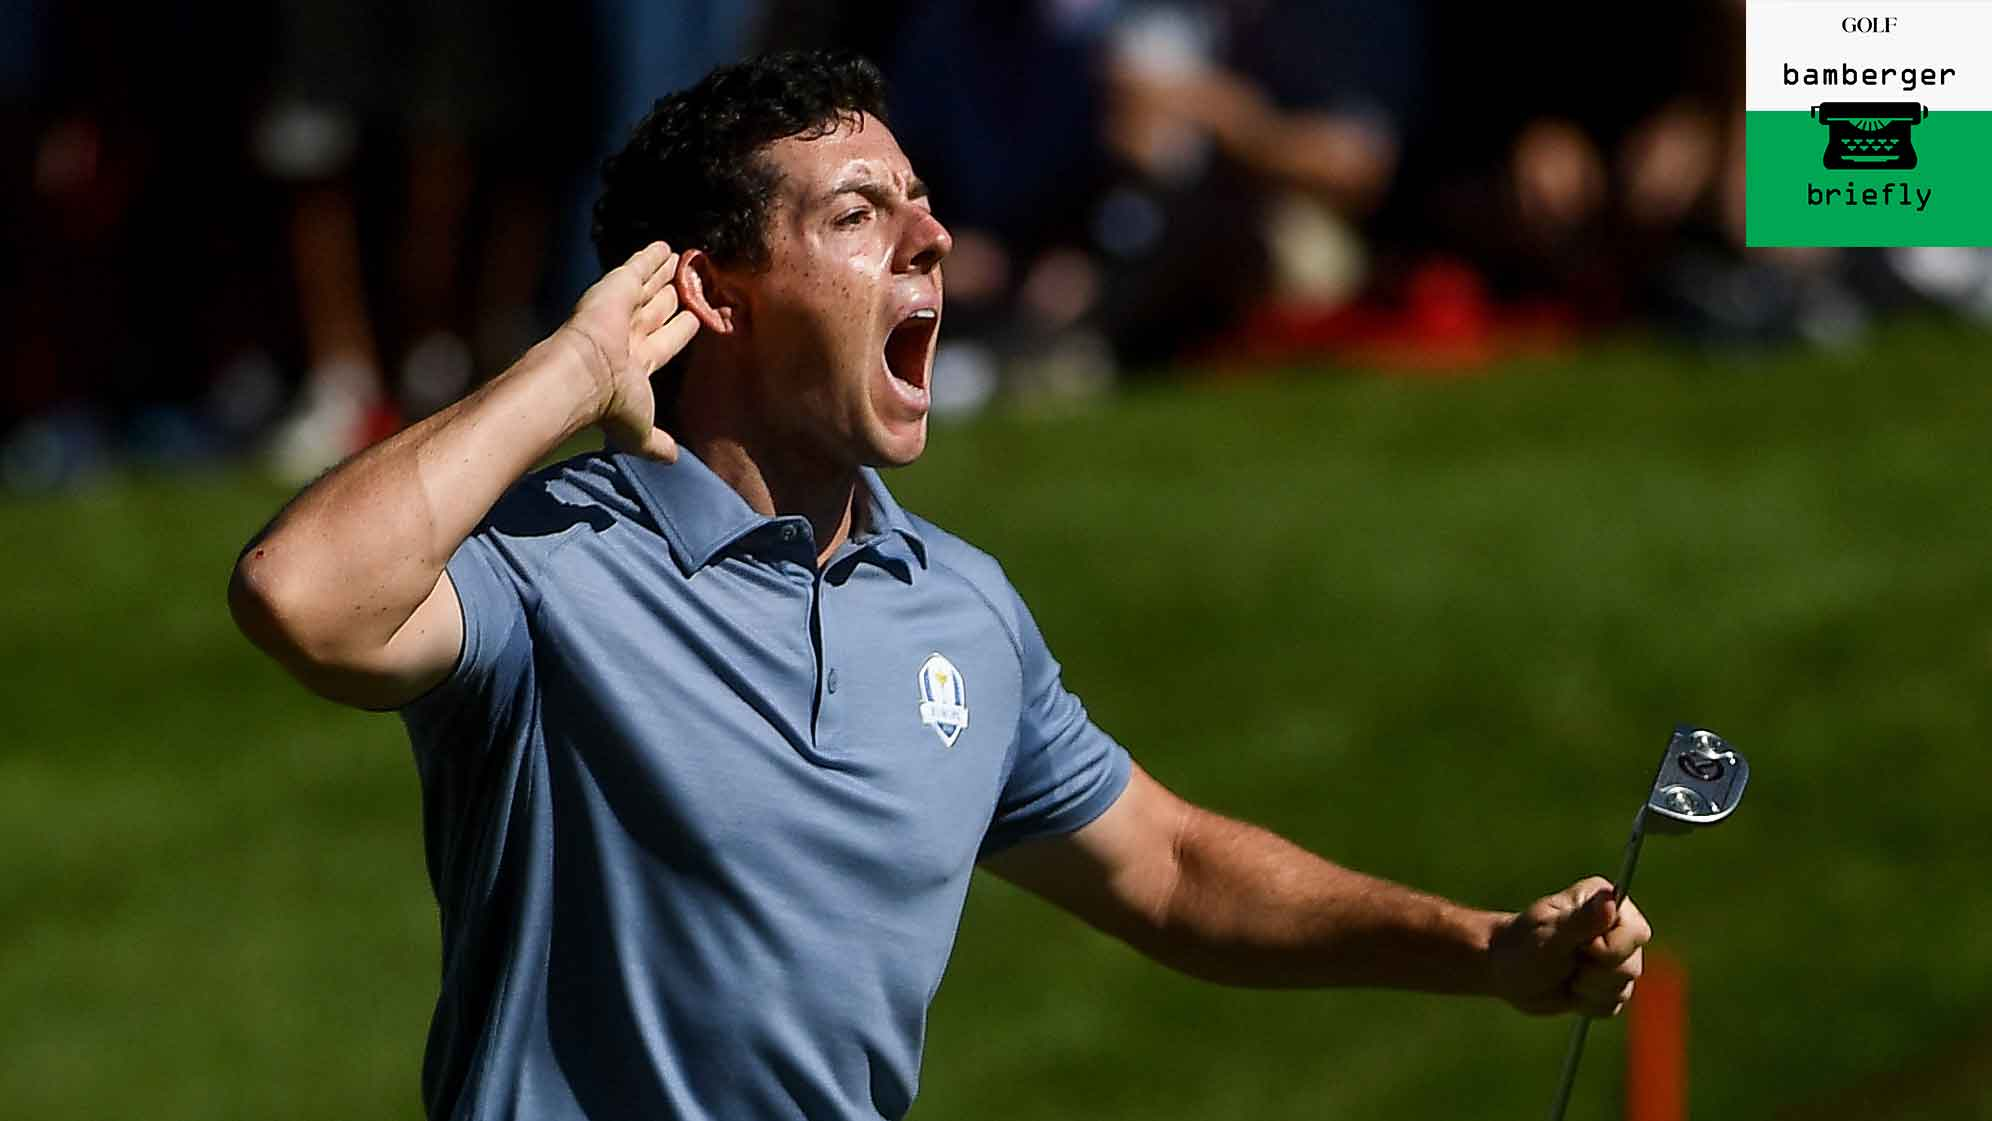 rory mcilroy at ryder cup